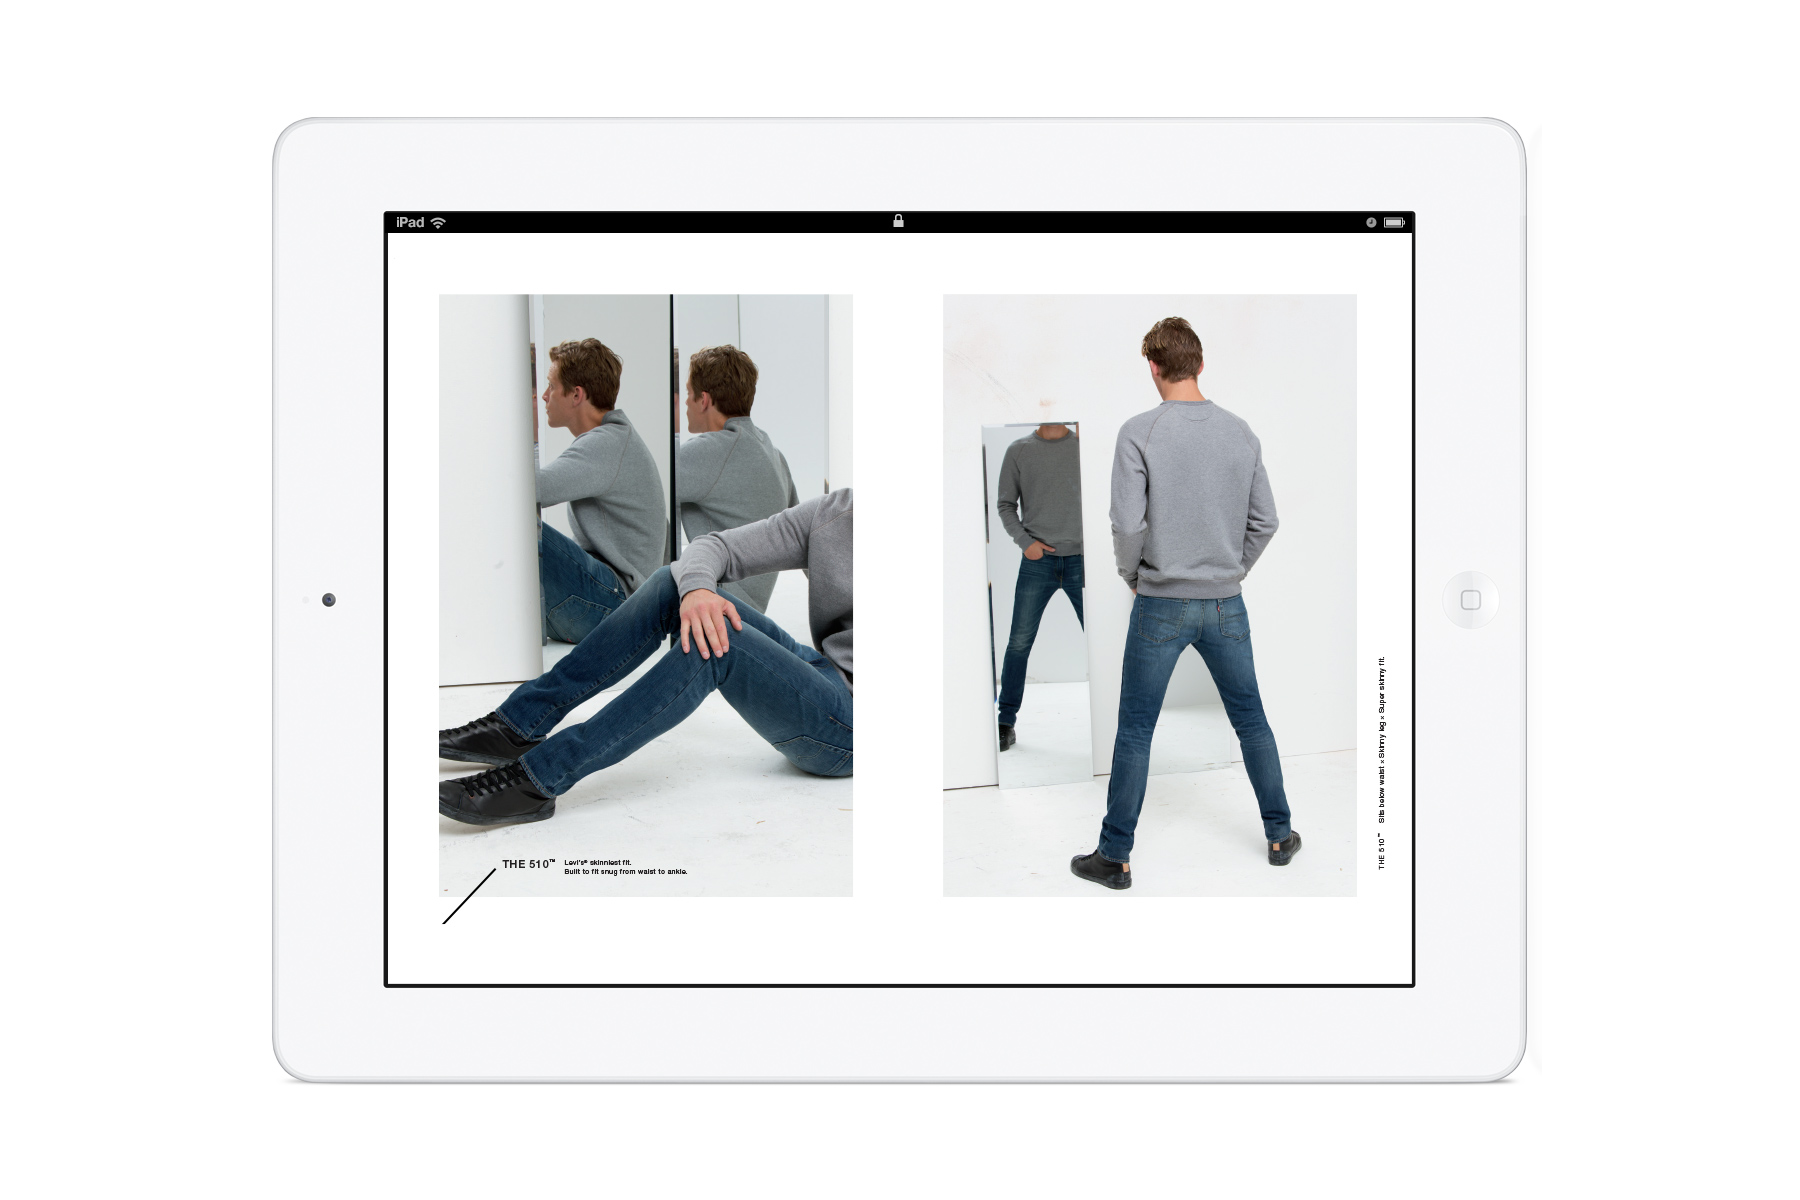 Levi's: Look Book is a seasonal in-store iPad kiosk for Levi's denim jeans range. I was creative director on this project and oversaw the interaction design and art direction.